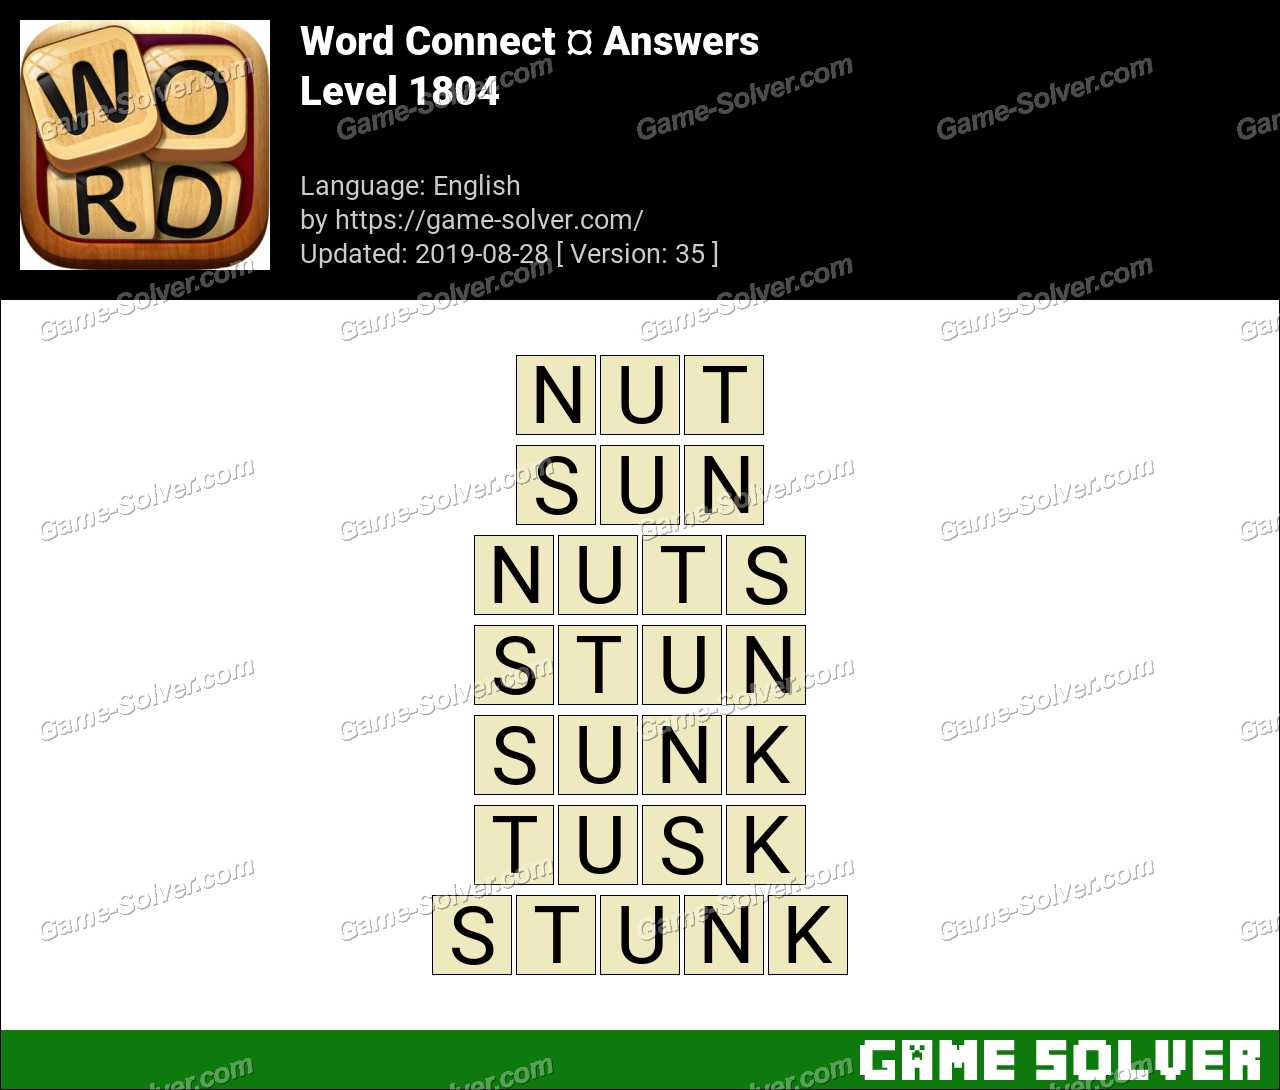 Word Connect Level 1804 Answers